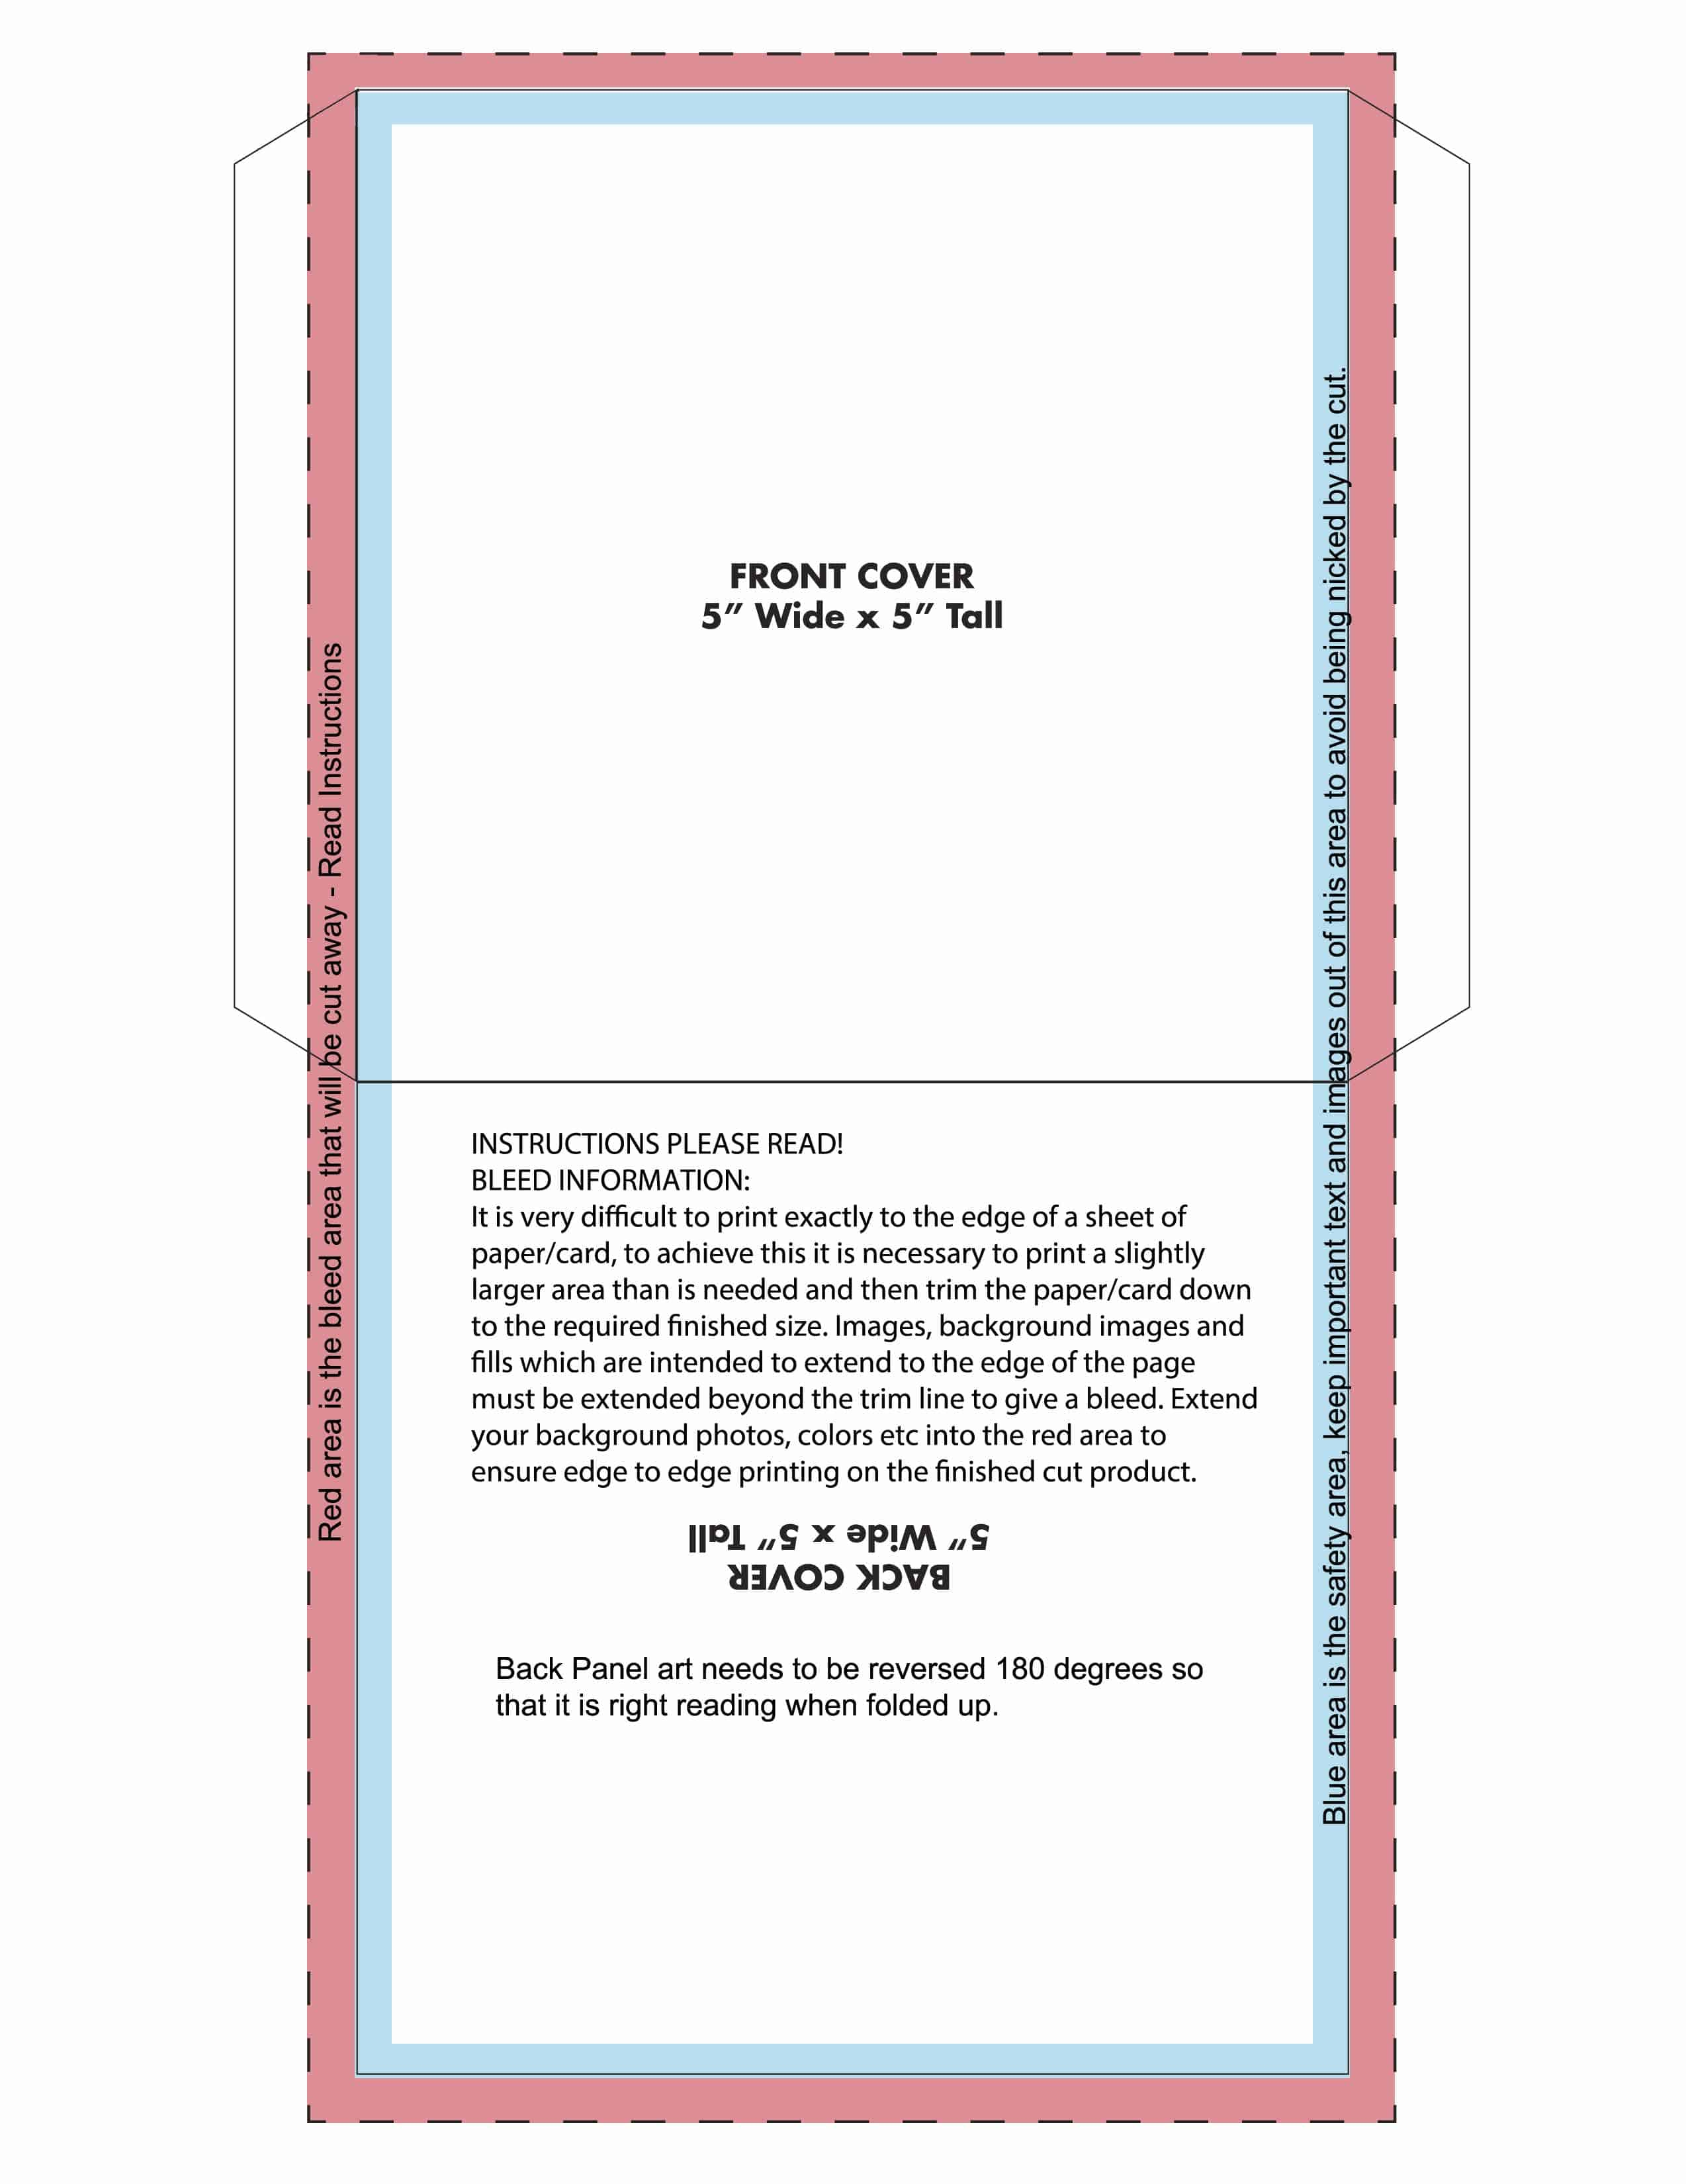 Unusual 12 Page Booklet Template Tall 1st Place Certificate Templates Rectangular 2 Page Resume Format For Experienced 2 Page Resume Too Long Young 2.25 Button Template Pink2014 Calendar Template Excel Templates For Disc Packaging   ELS Productions